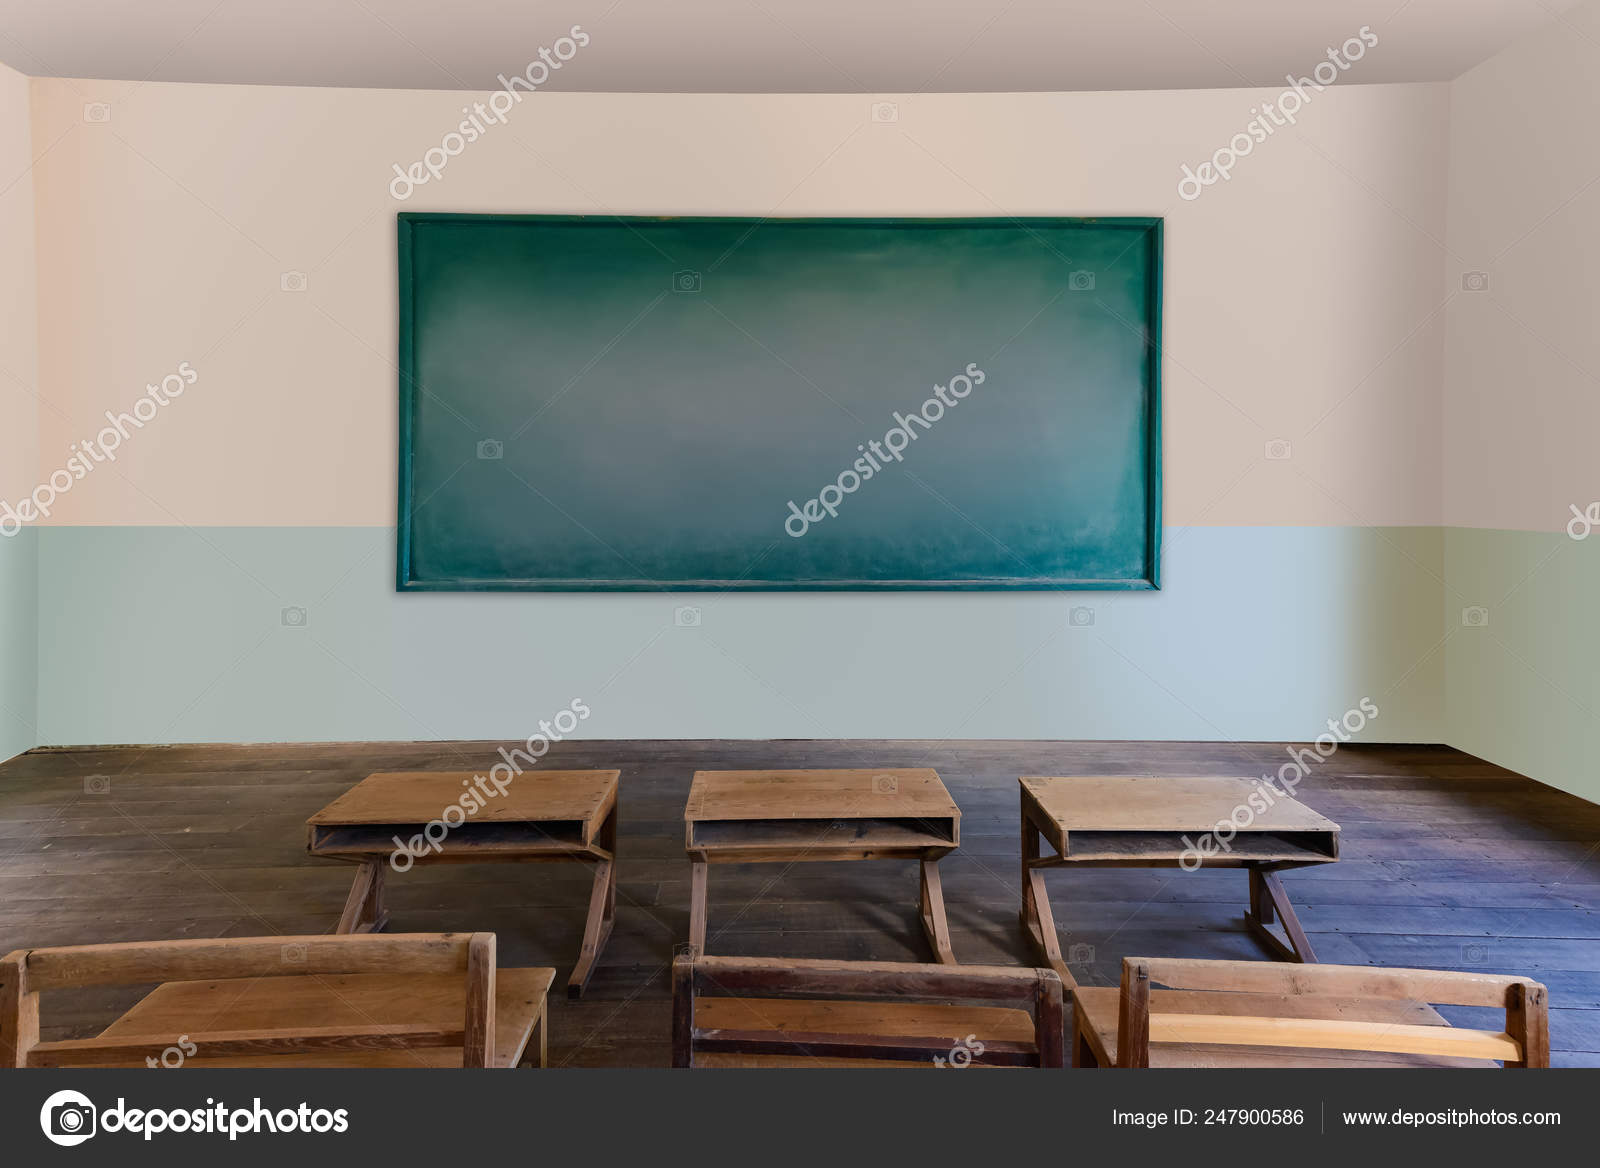 Antique classroom in school with Rows of empty wooden desks ...